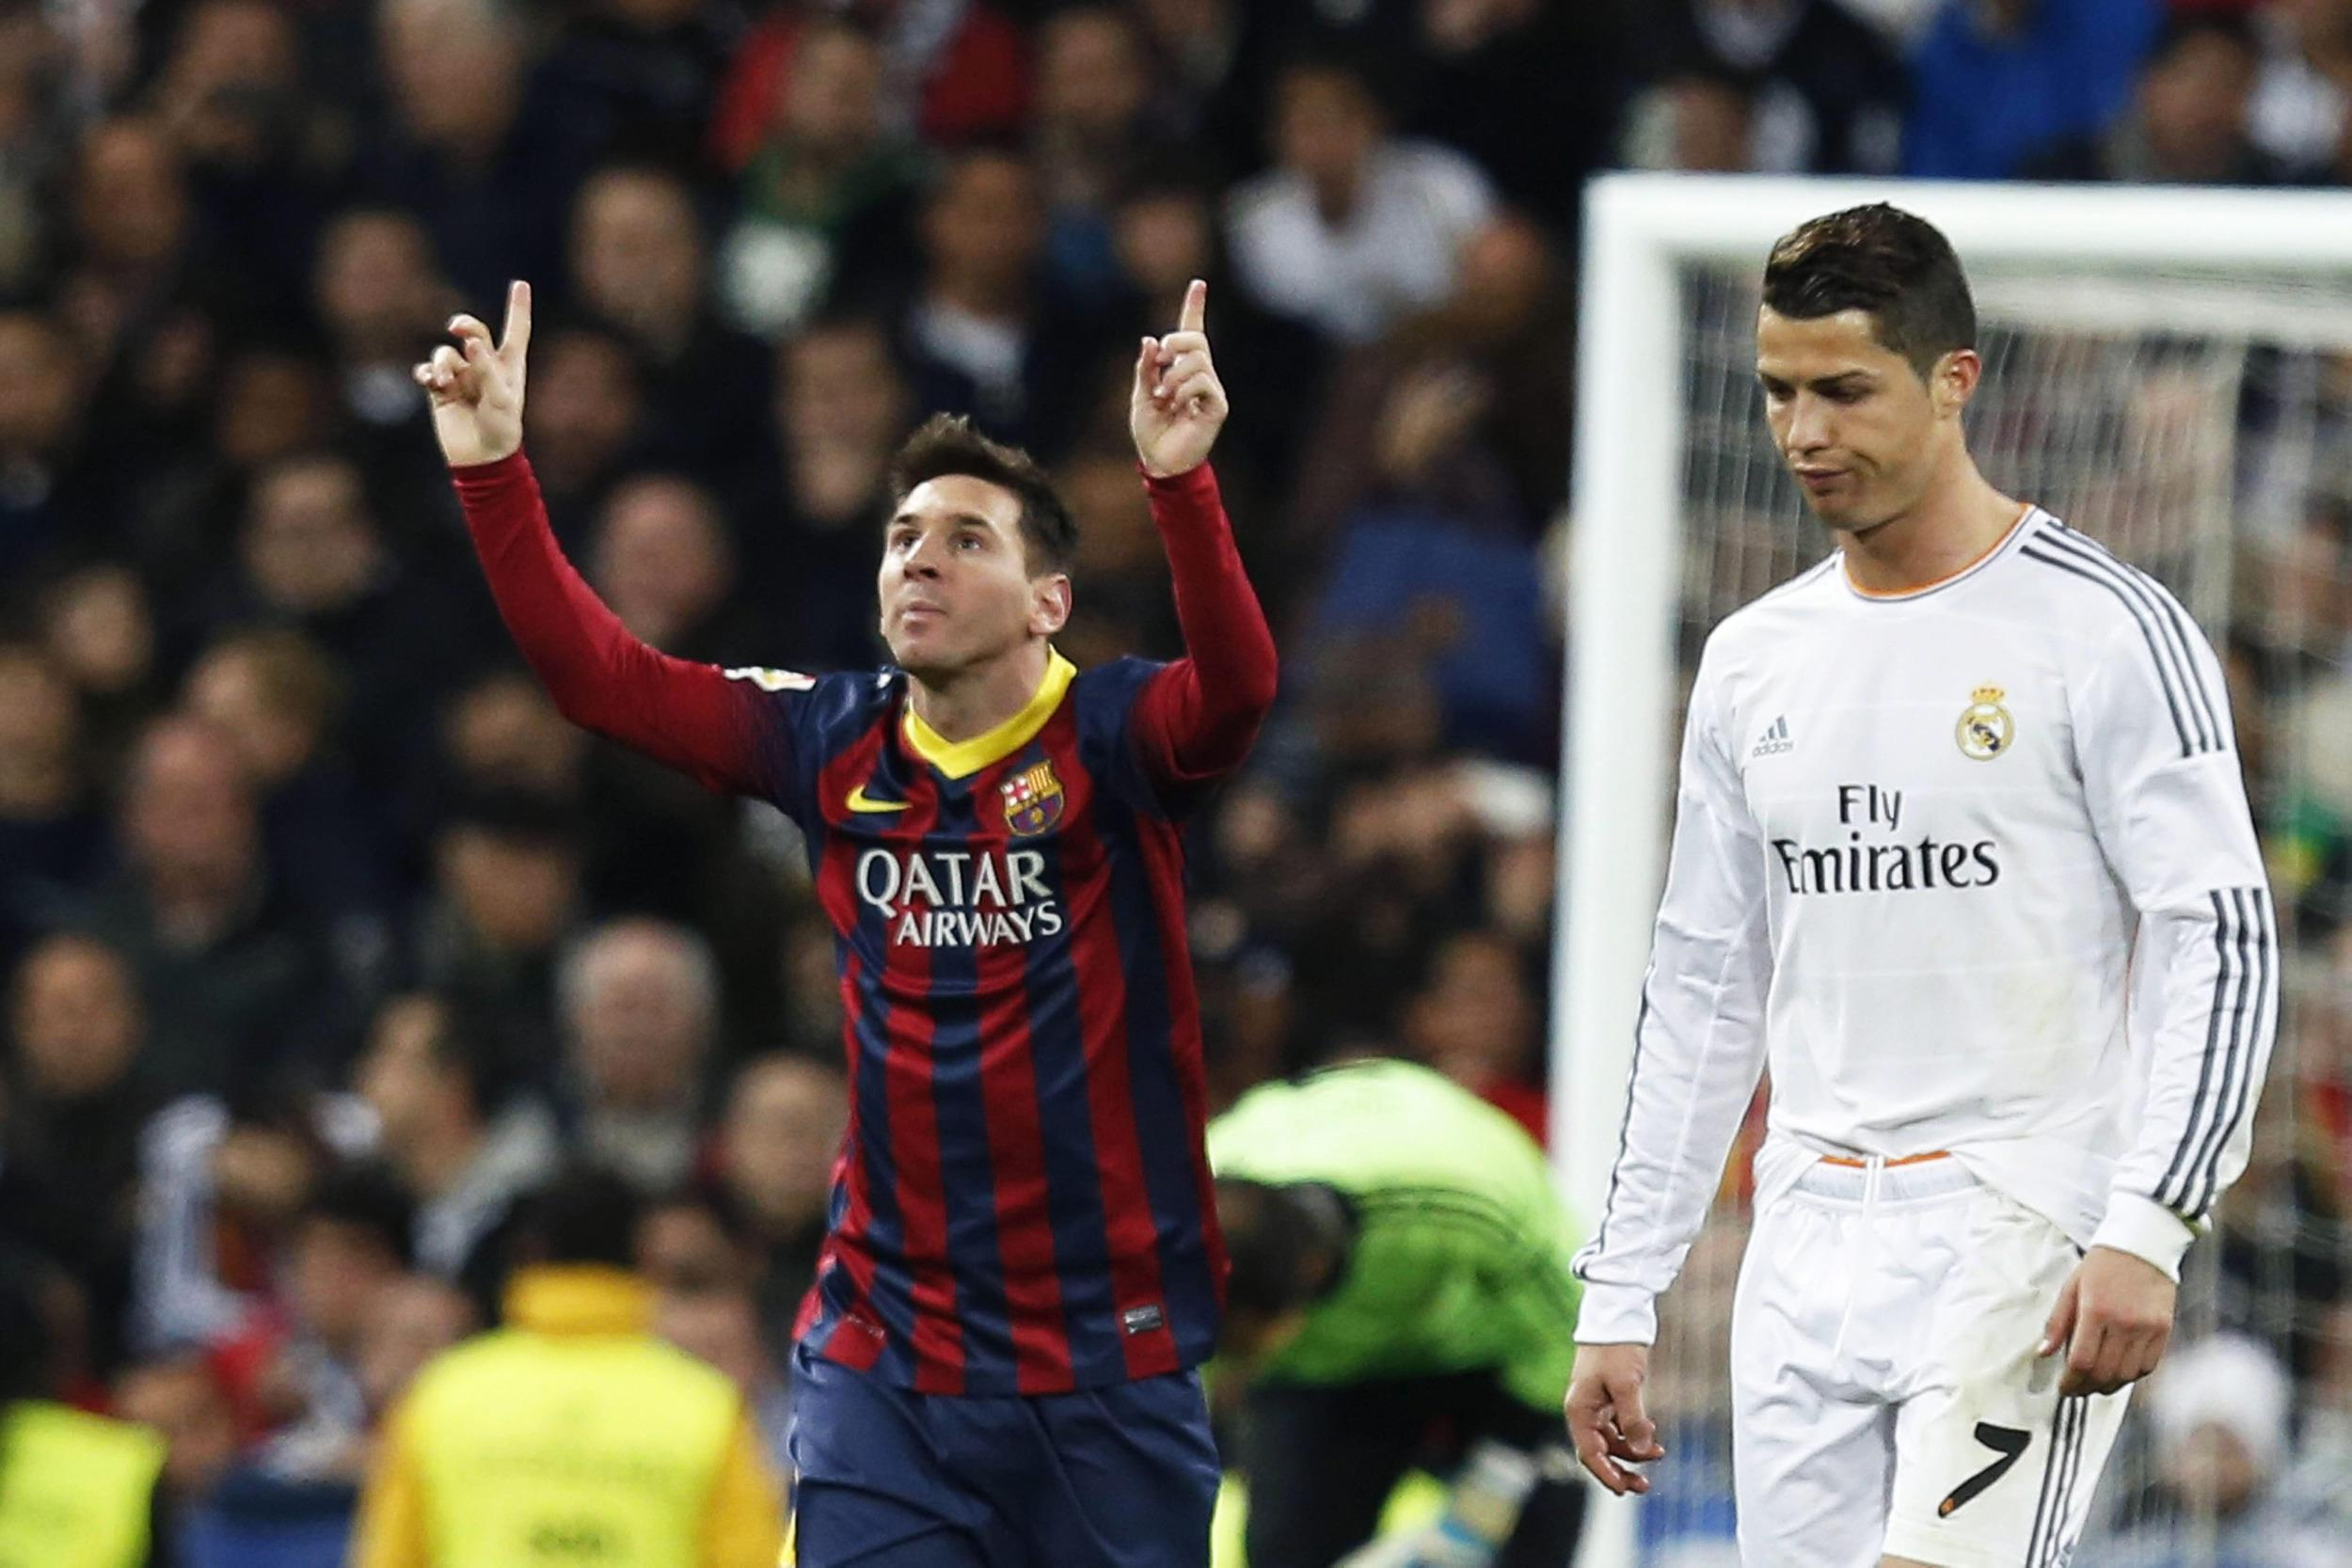 Cristiano Ronaldo (R) and Lionel Messi (L) are the faces of the Nike-Adidas soccer marketing rivalry.